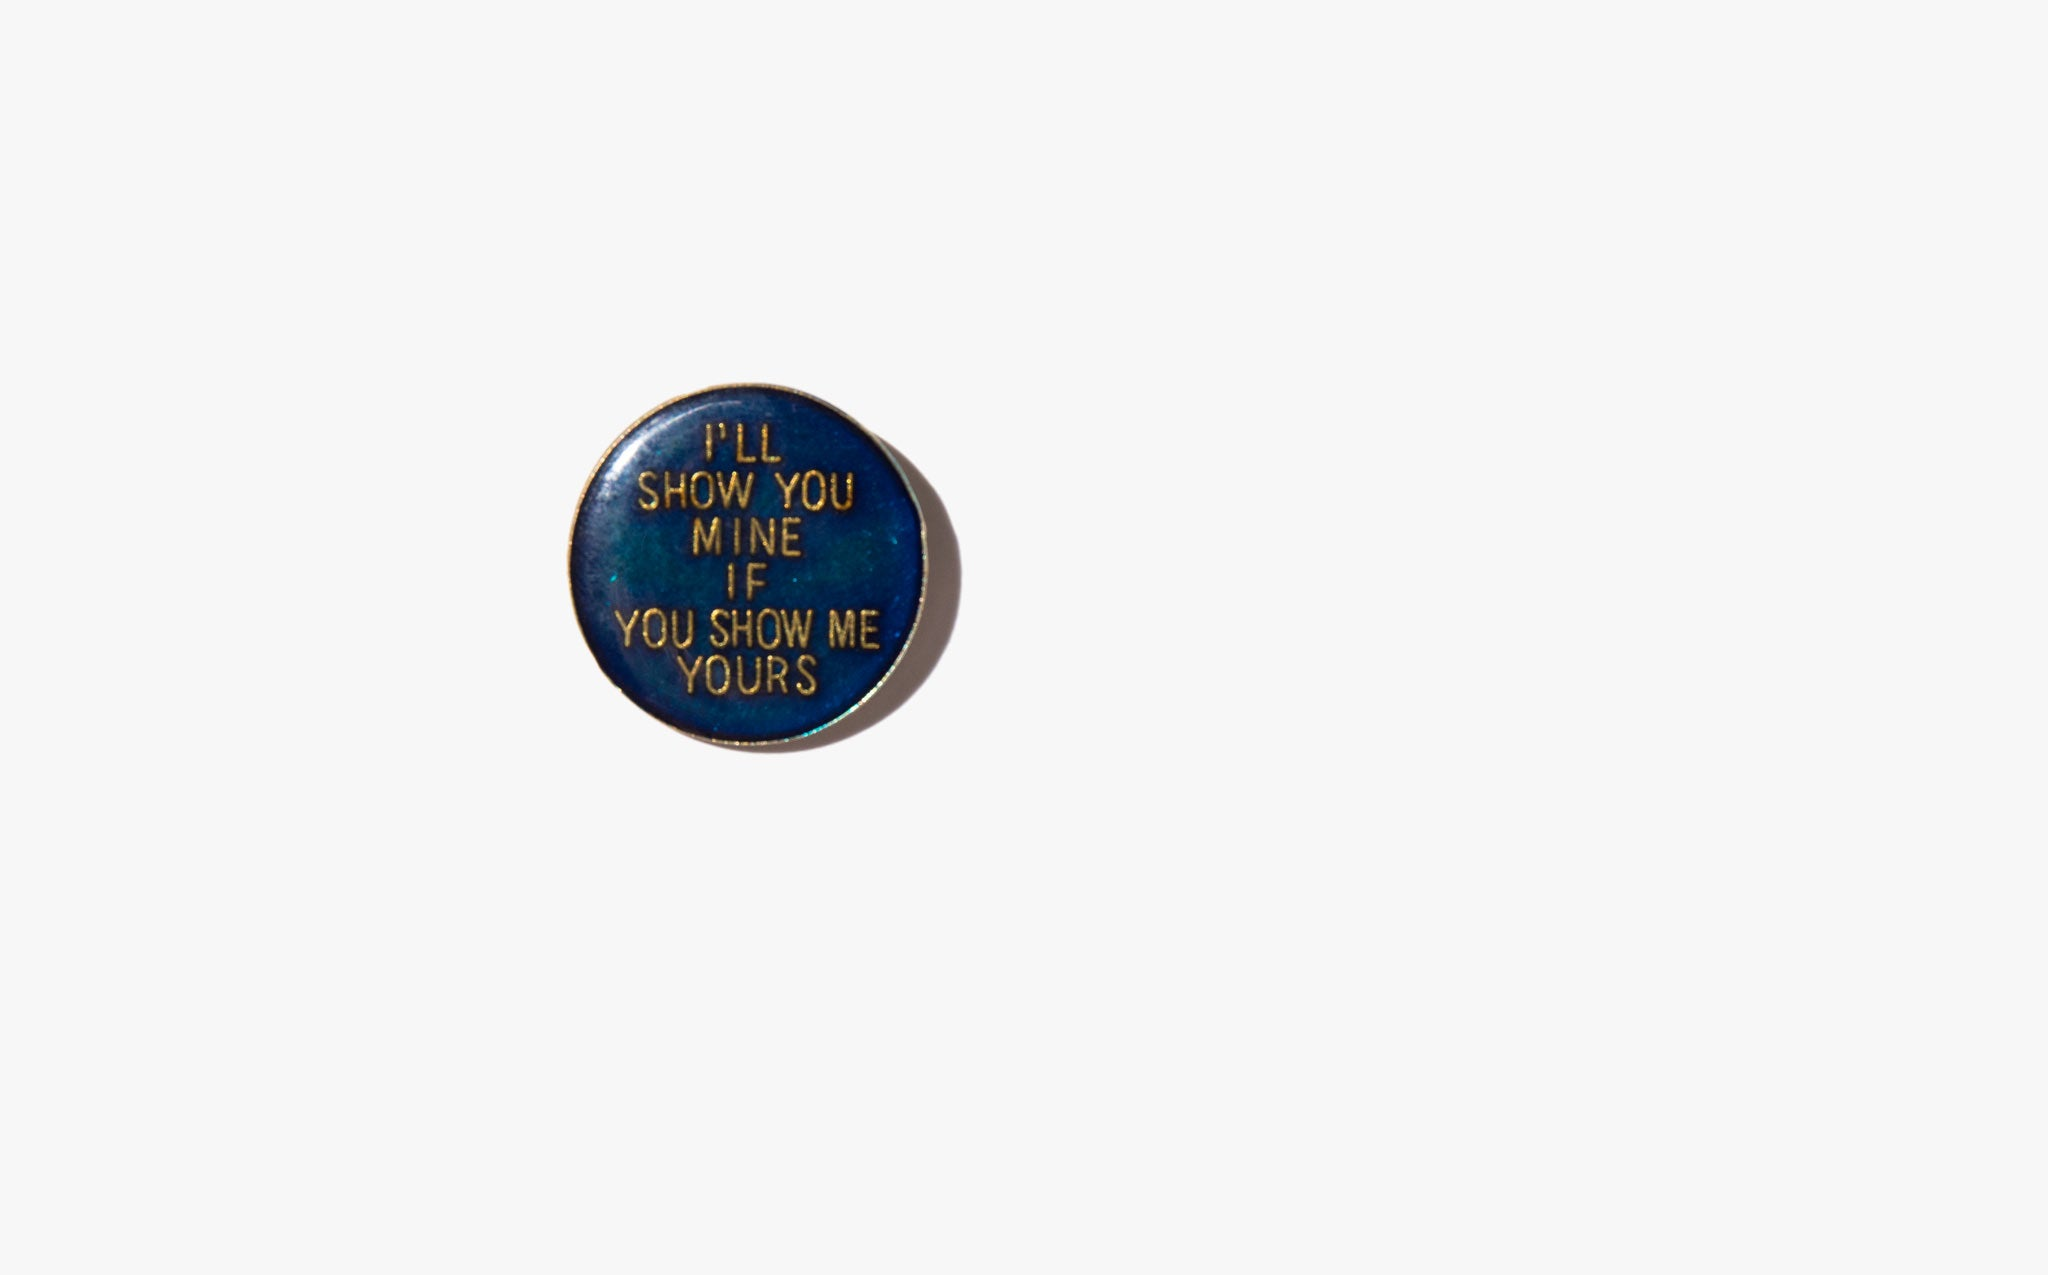 I'll Show You Mine Vintage Pin